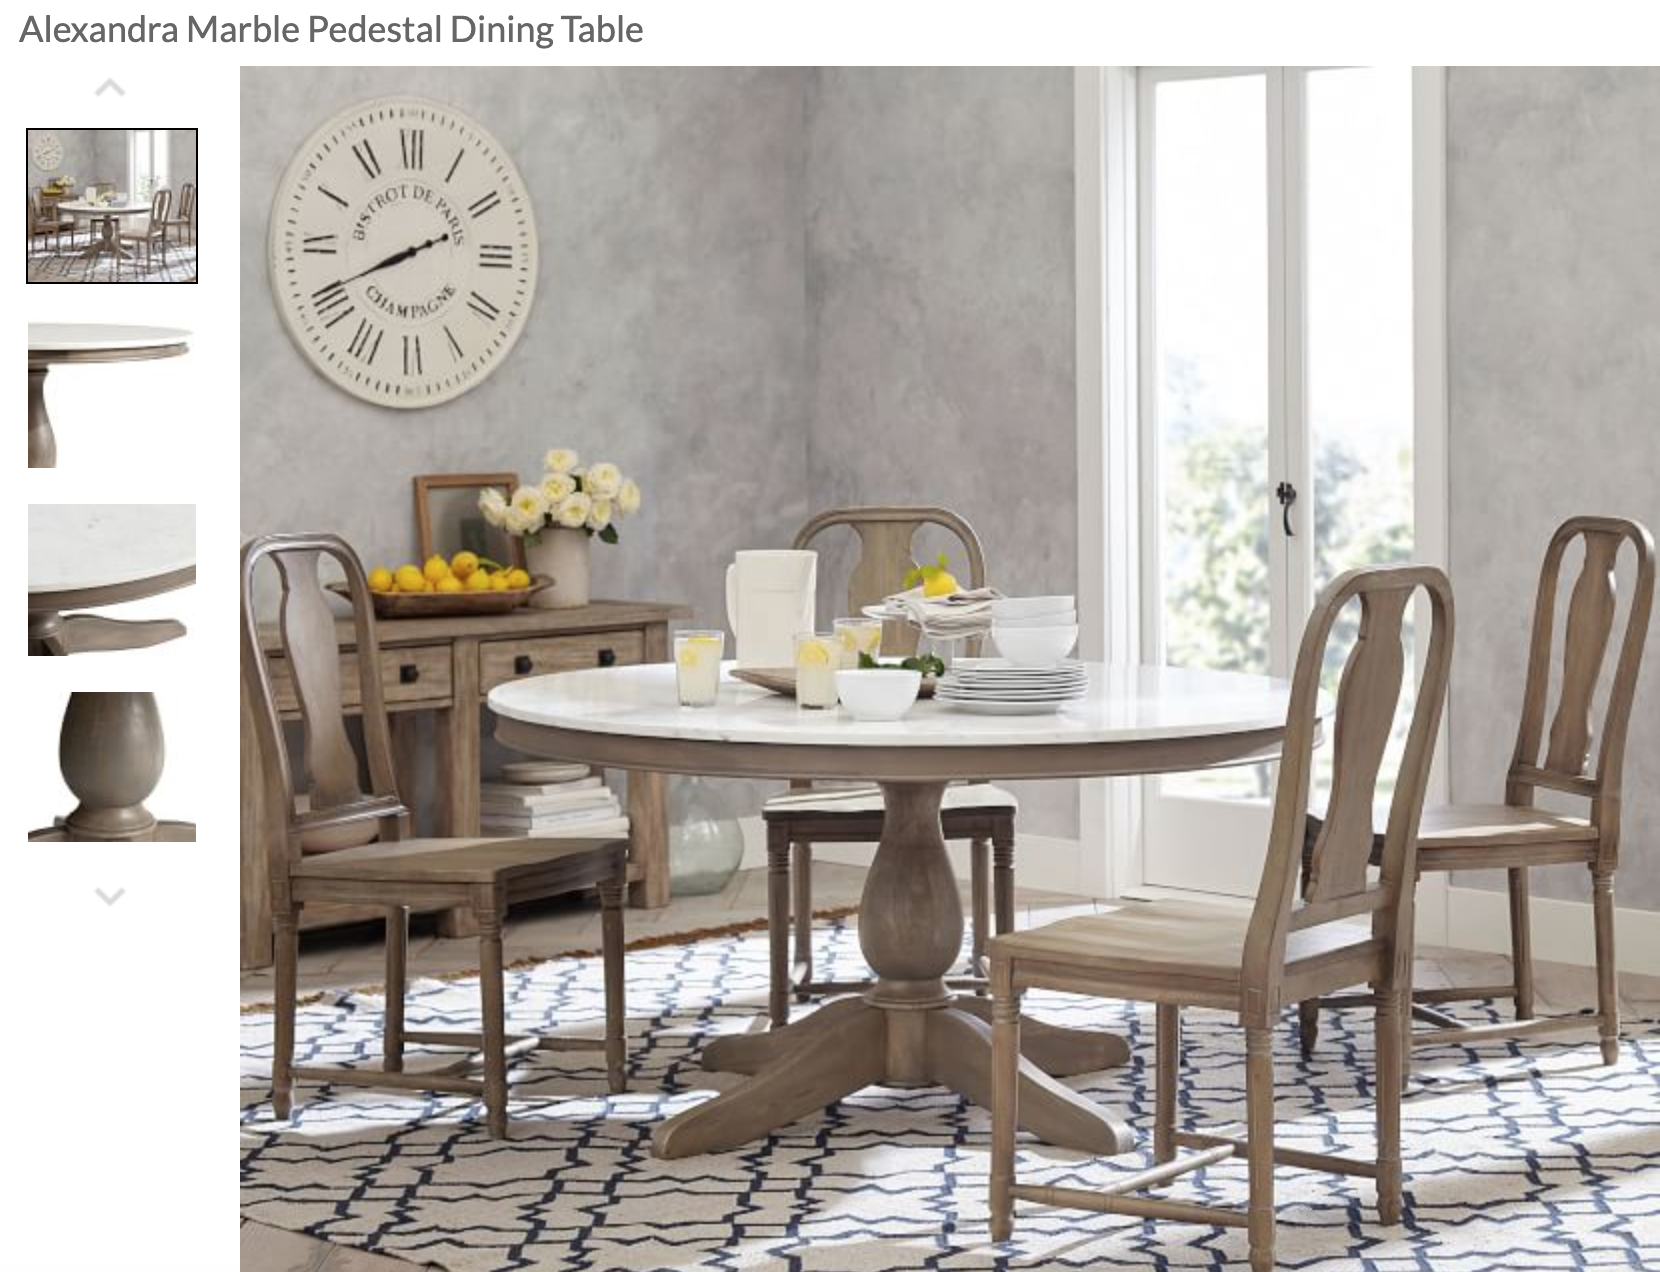 Alexandra Round Marble Pedestal Dining Table | Apt Decor For 2017 Alexandra Round Marble Pedestal Dining Tables (Image 5 of 25)